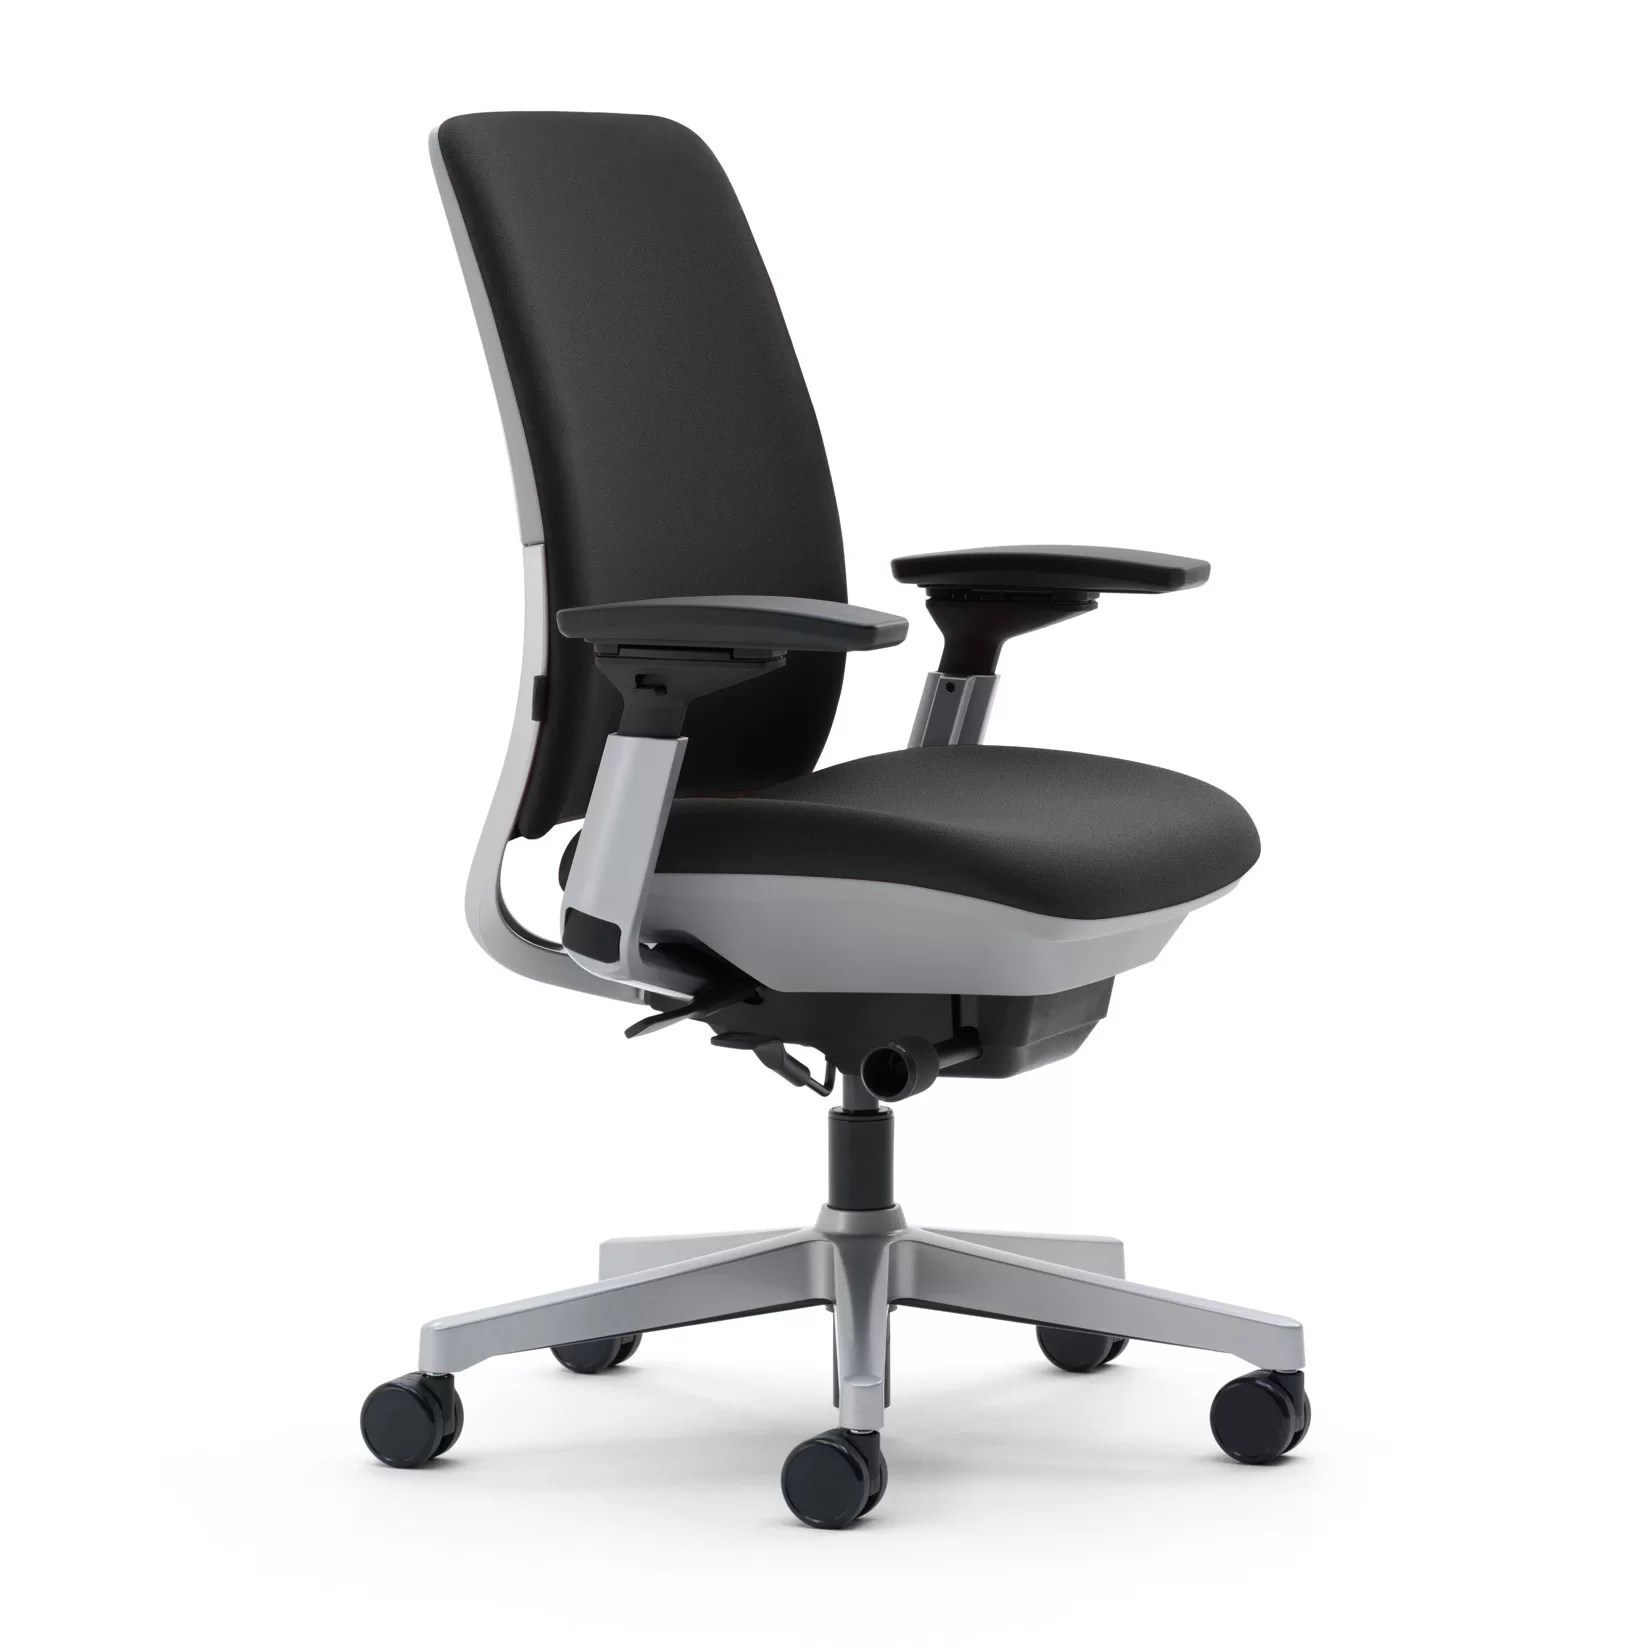 Work Chair Steelcase Amia Mid Back Upholstered Work Chair And Reviews